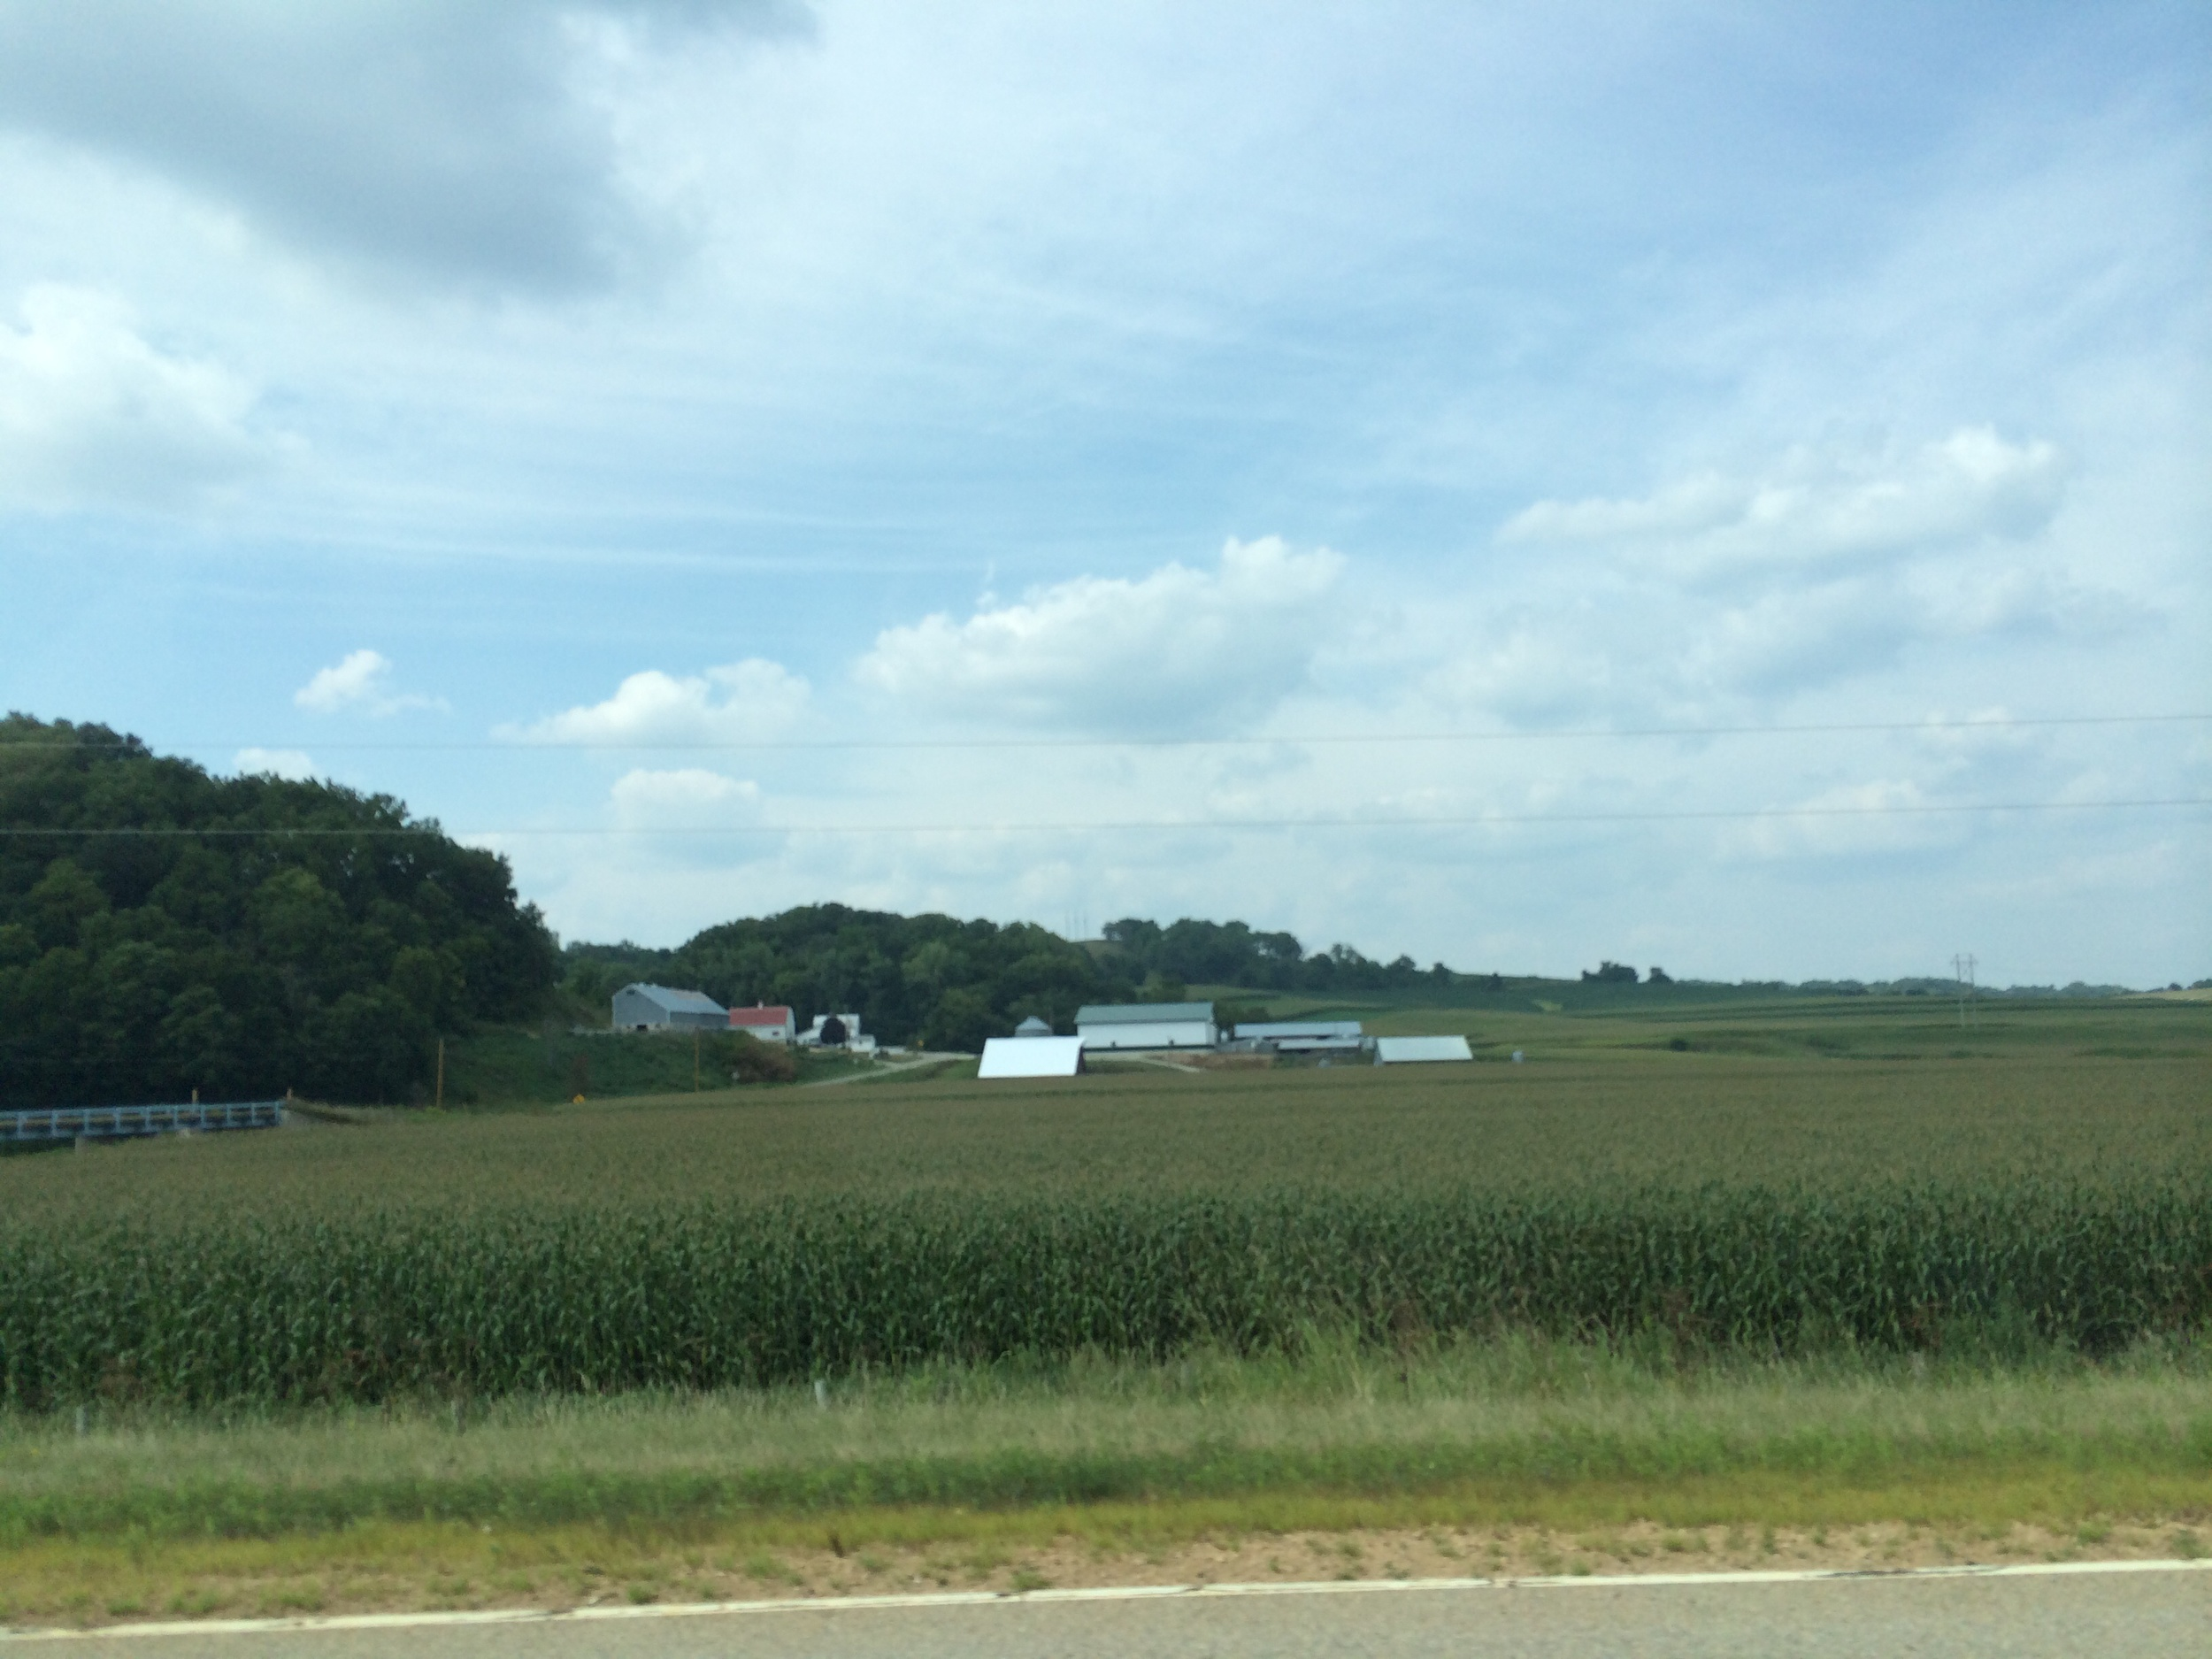 Farms as far as the eye can see. They look mostly like family farms and not huge corporate farms.